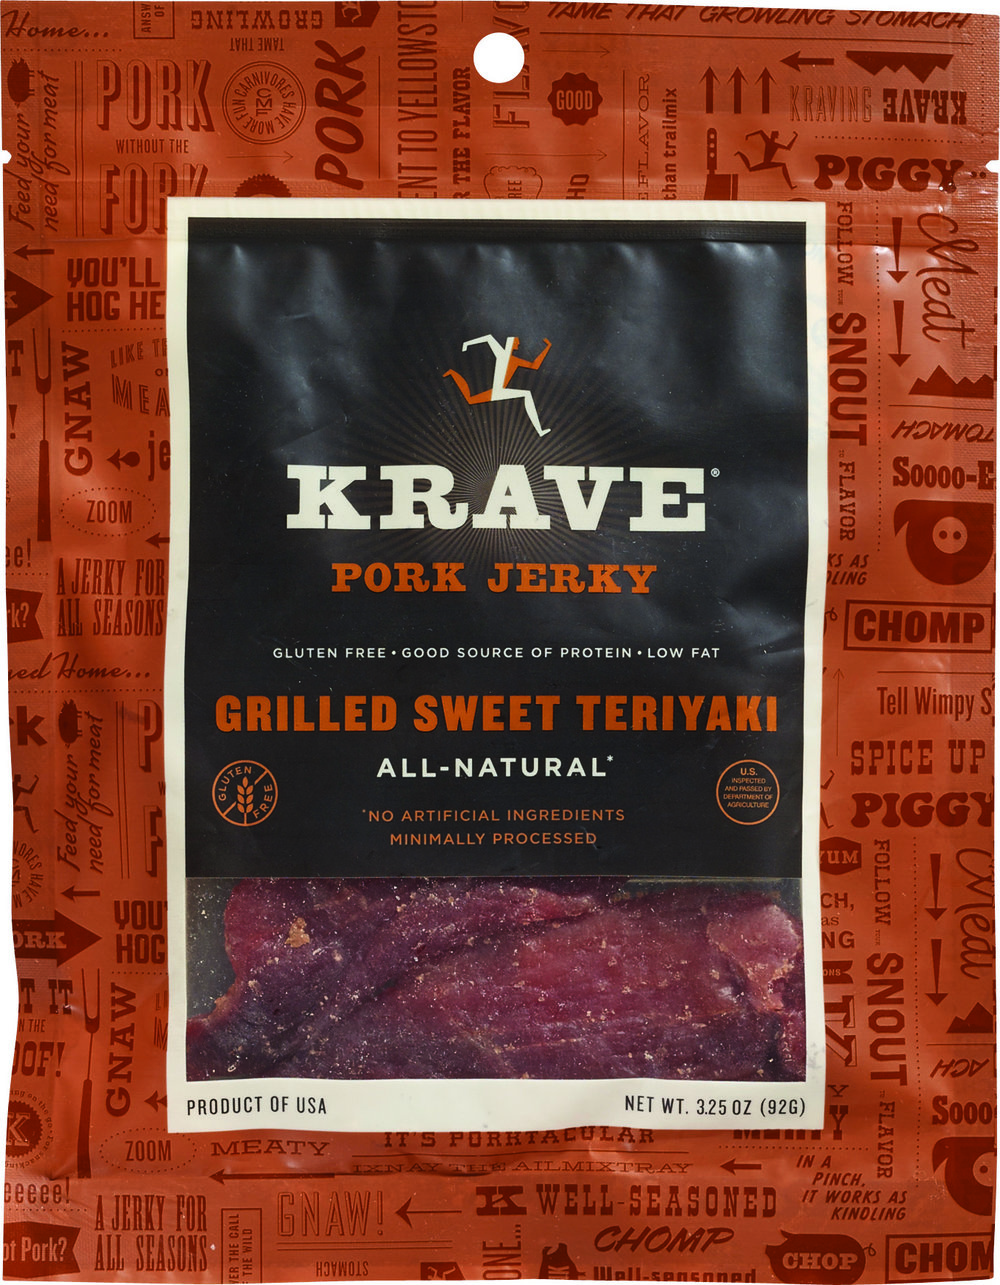 Krave Pork Jerky Grilled Sweet Teriyaki